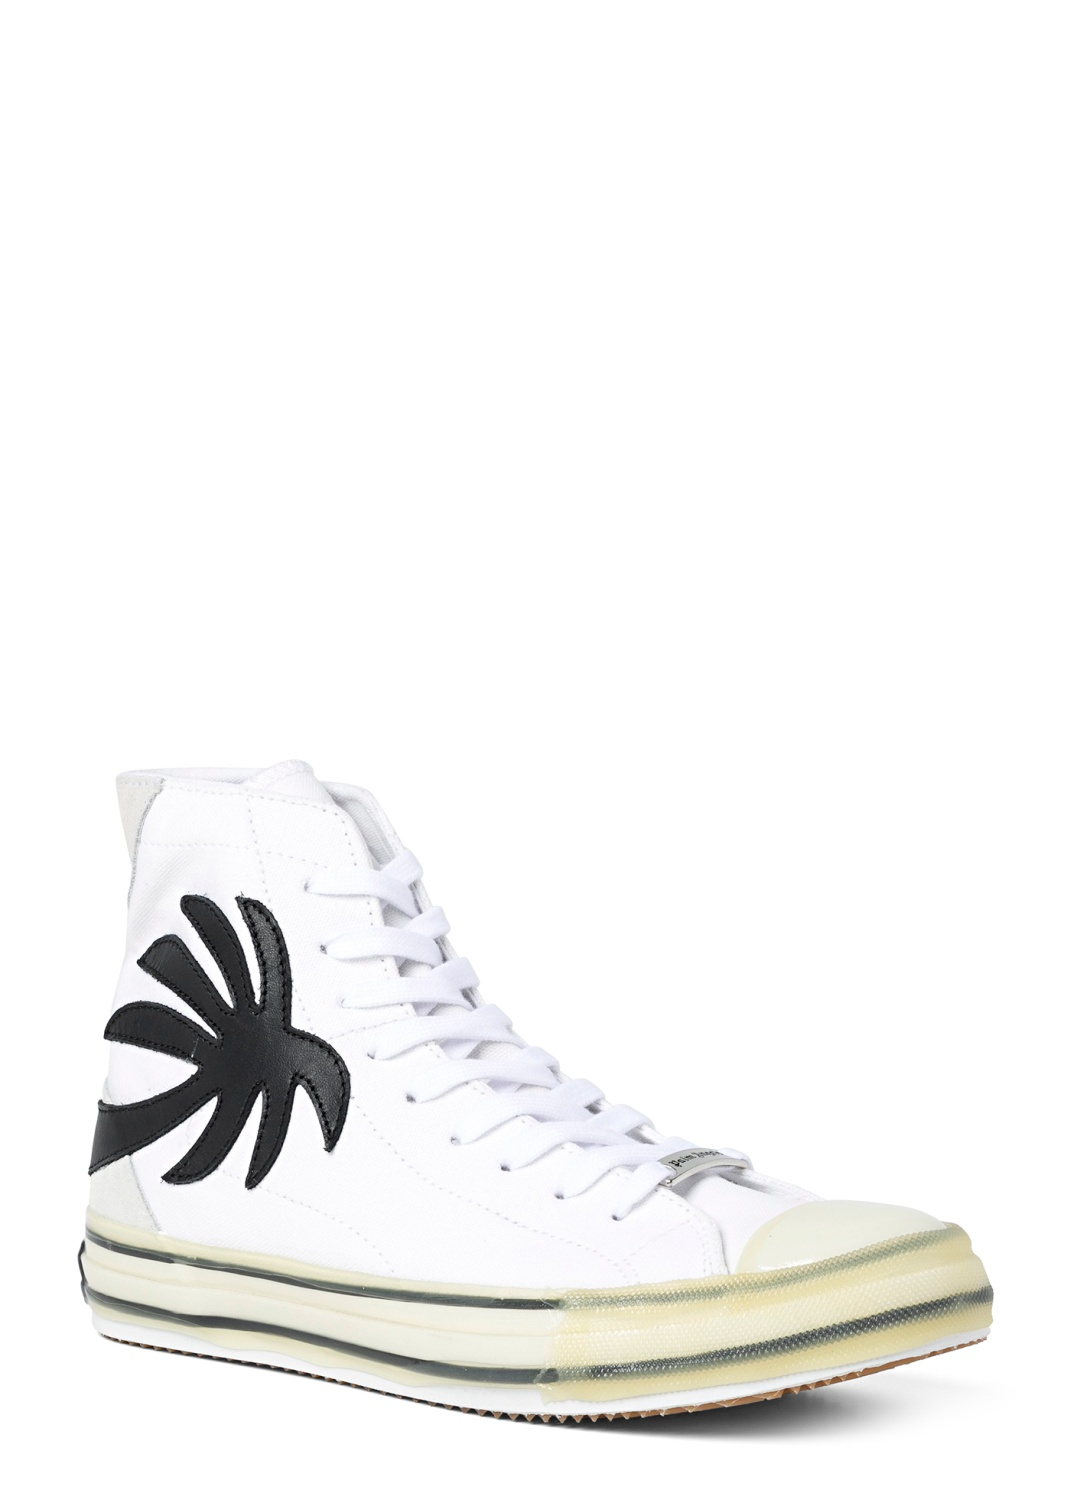 VULC PALM HIGH TOP WHITE BLACK image number 1